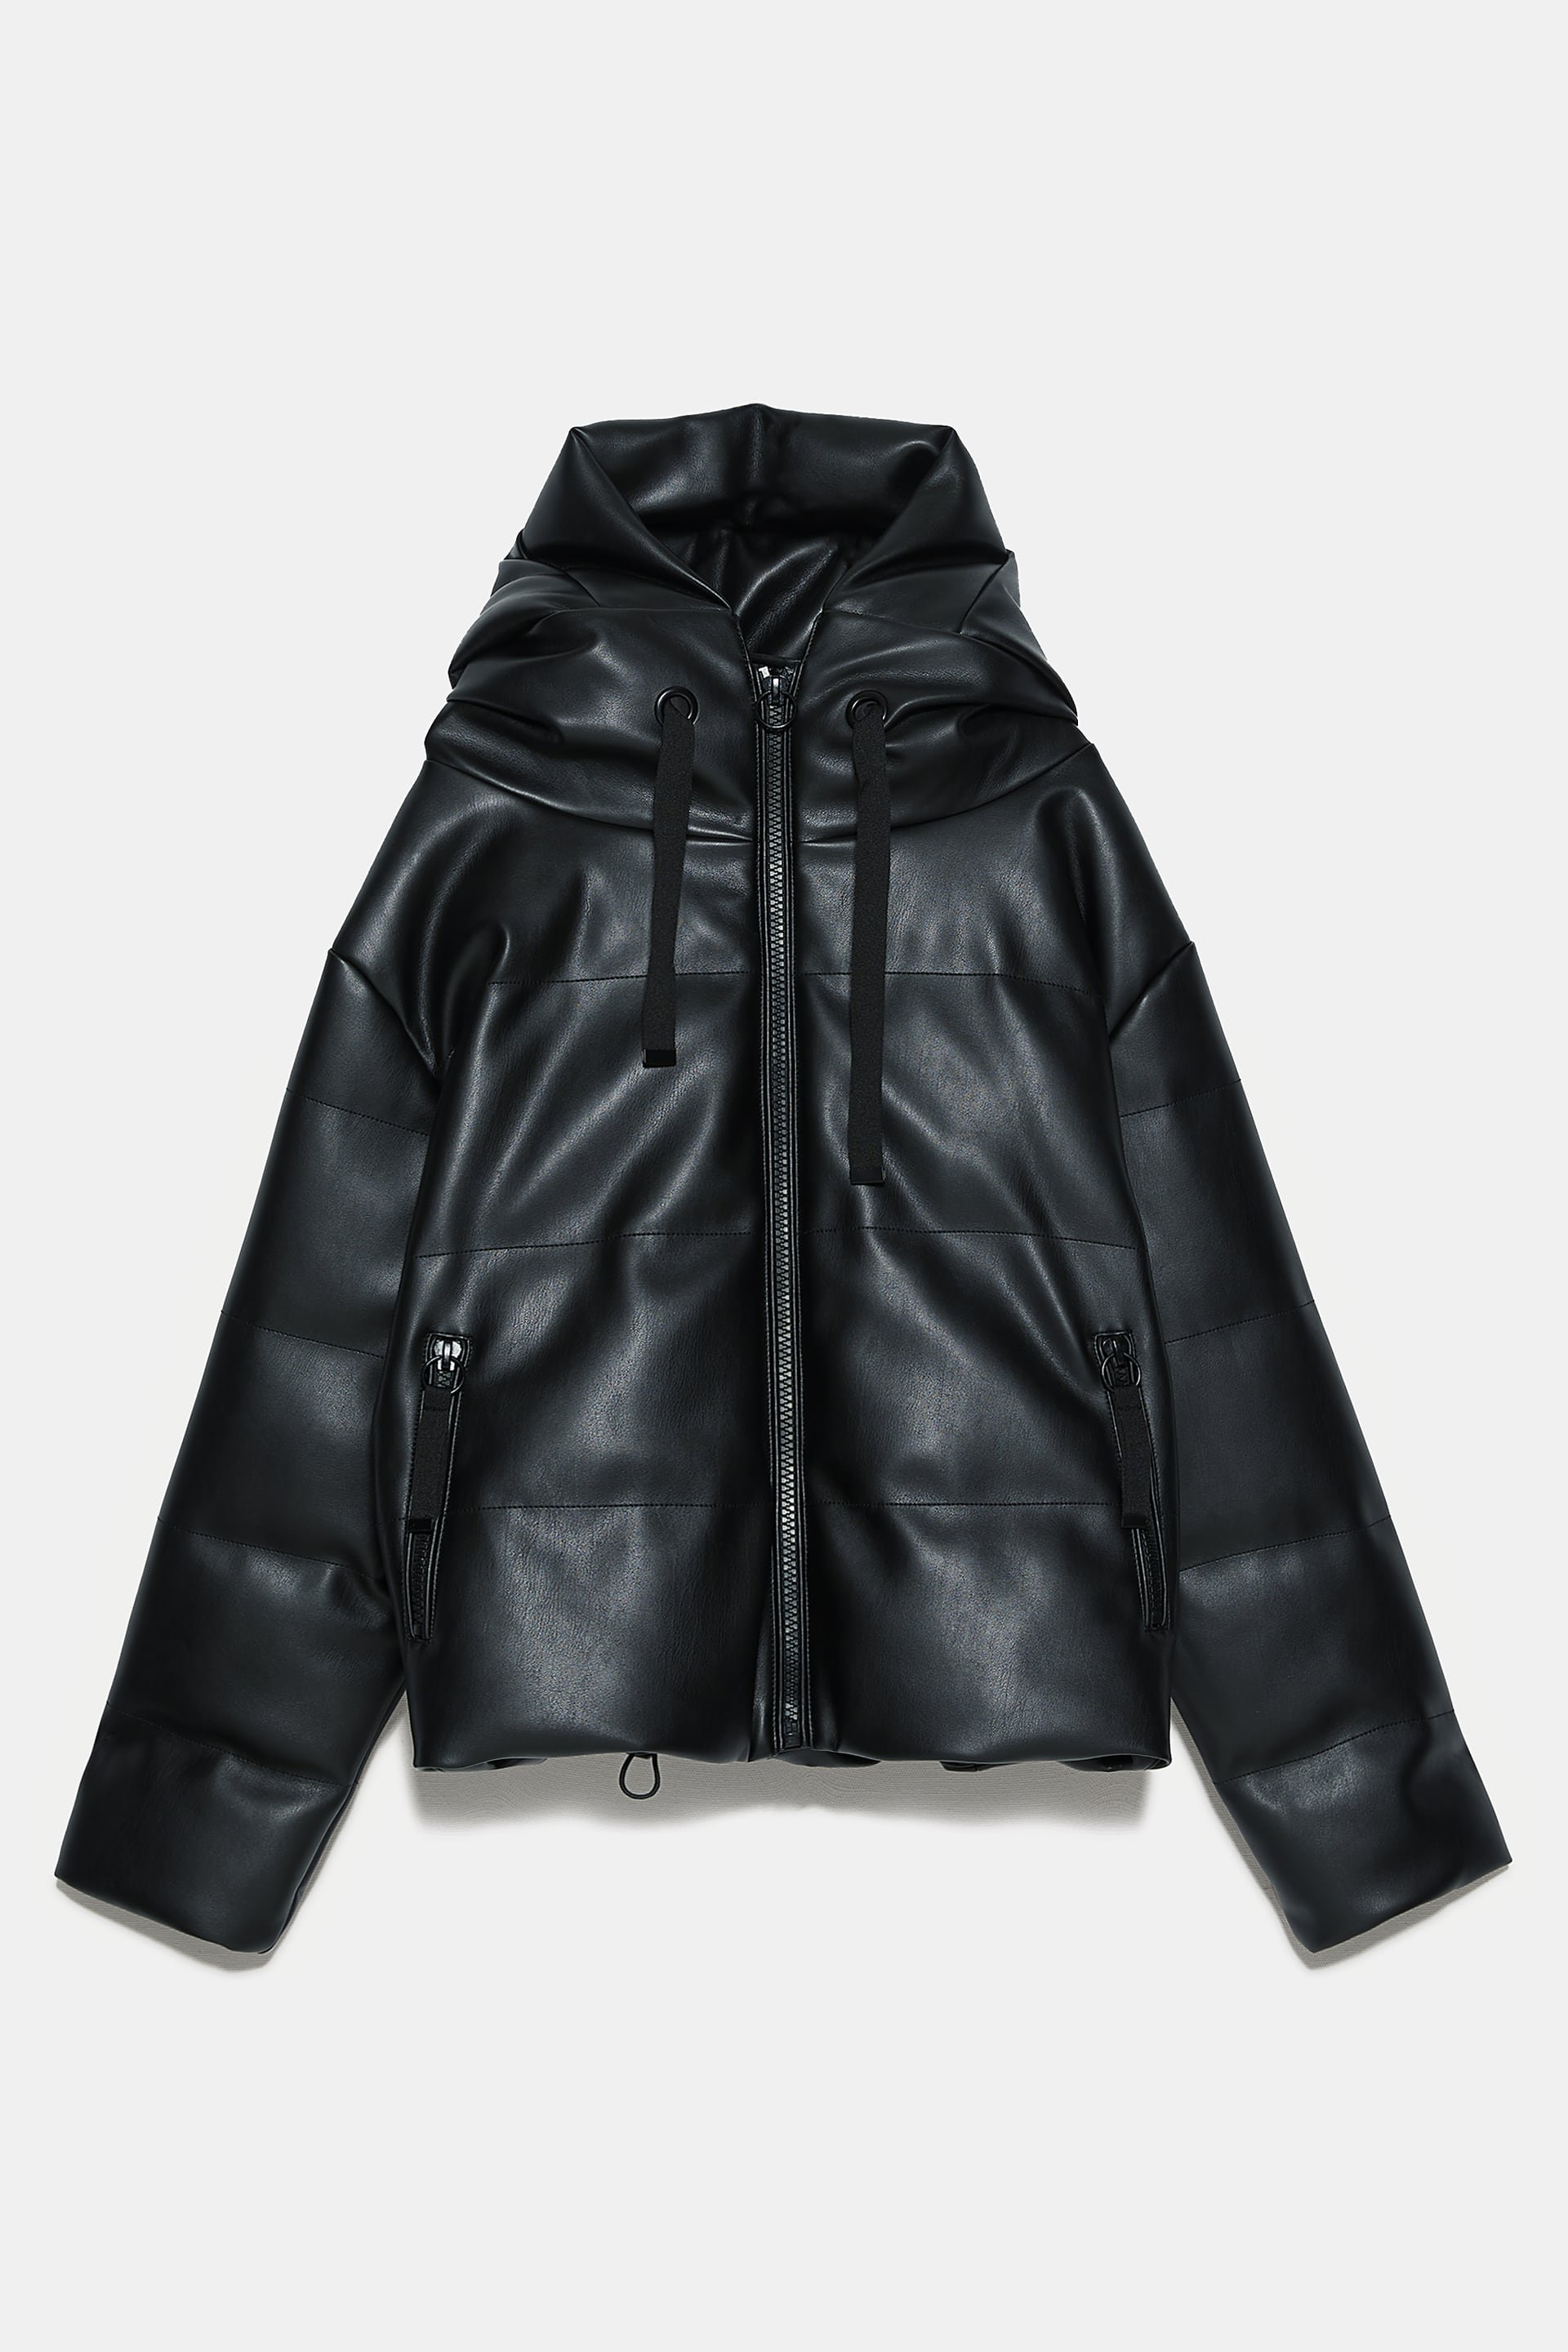 FAUX LEATHER JACKET - Leather Jackets- puffer